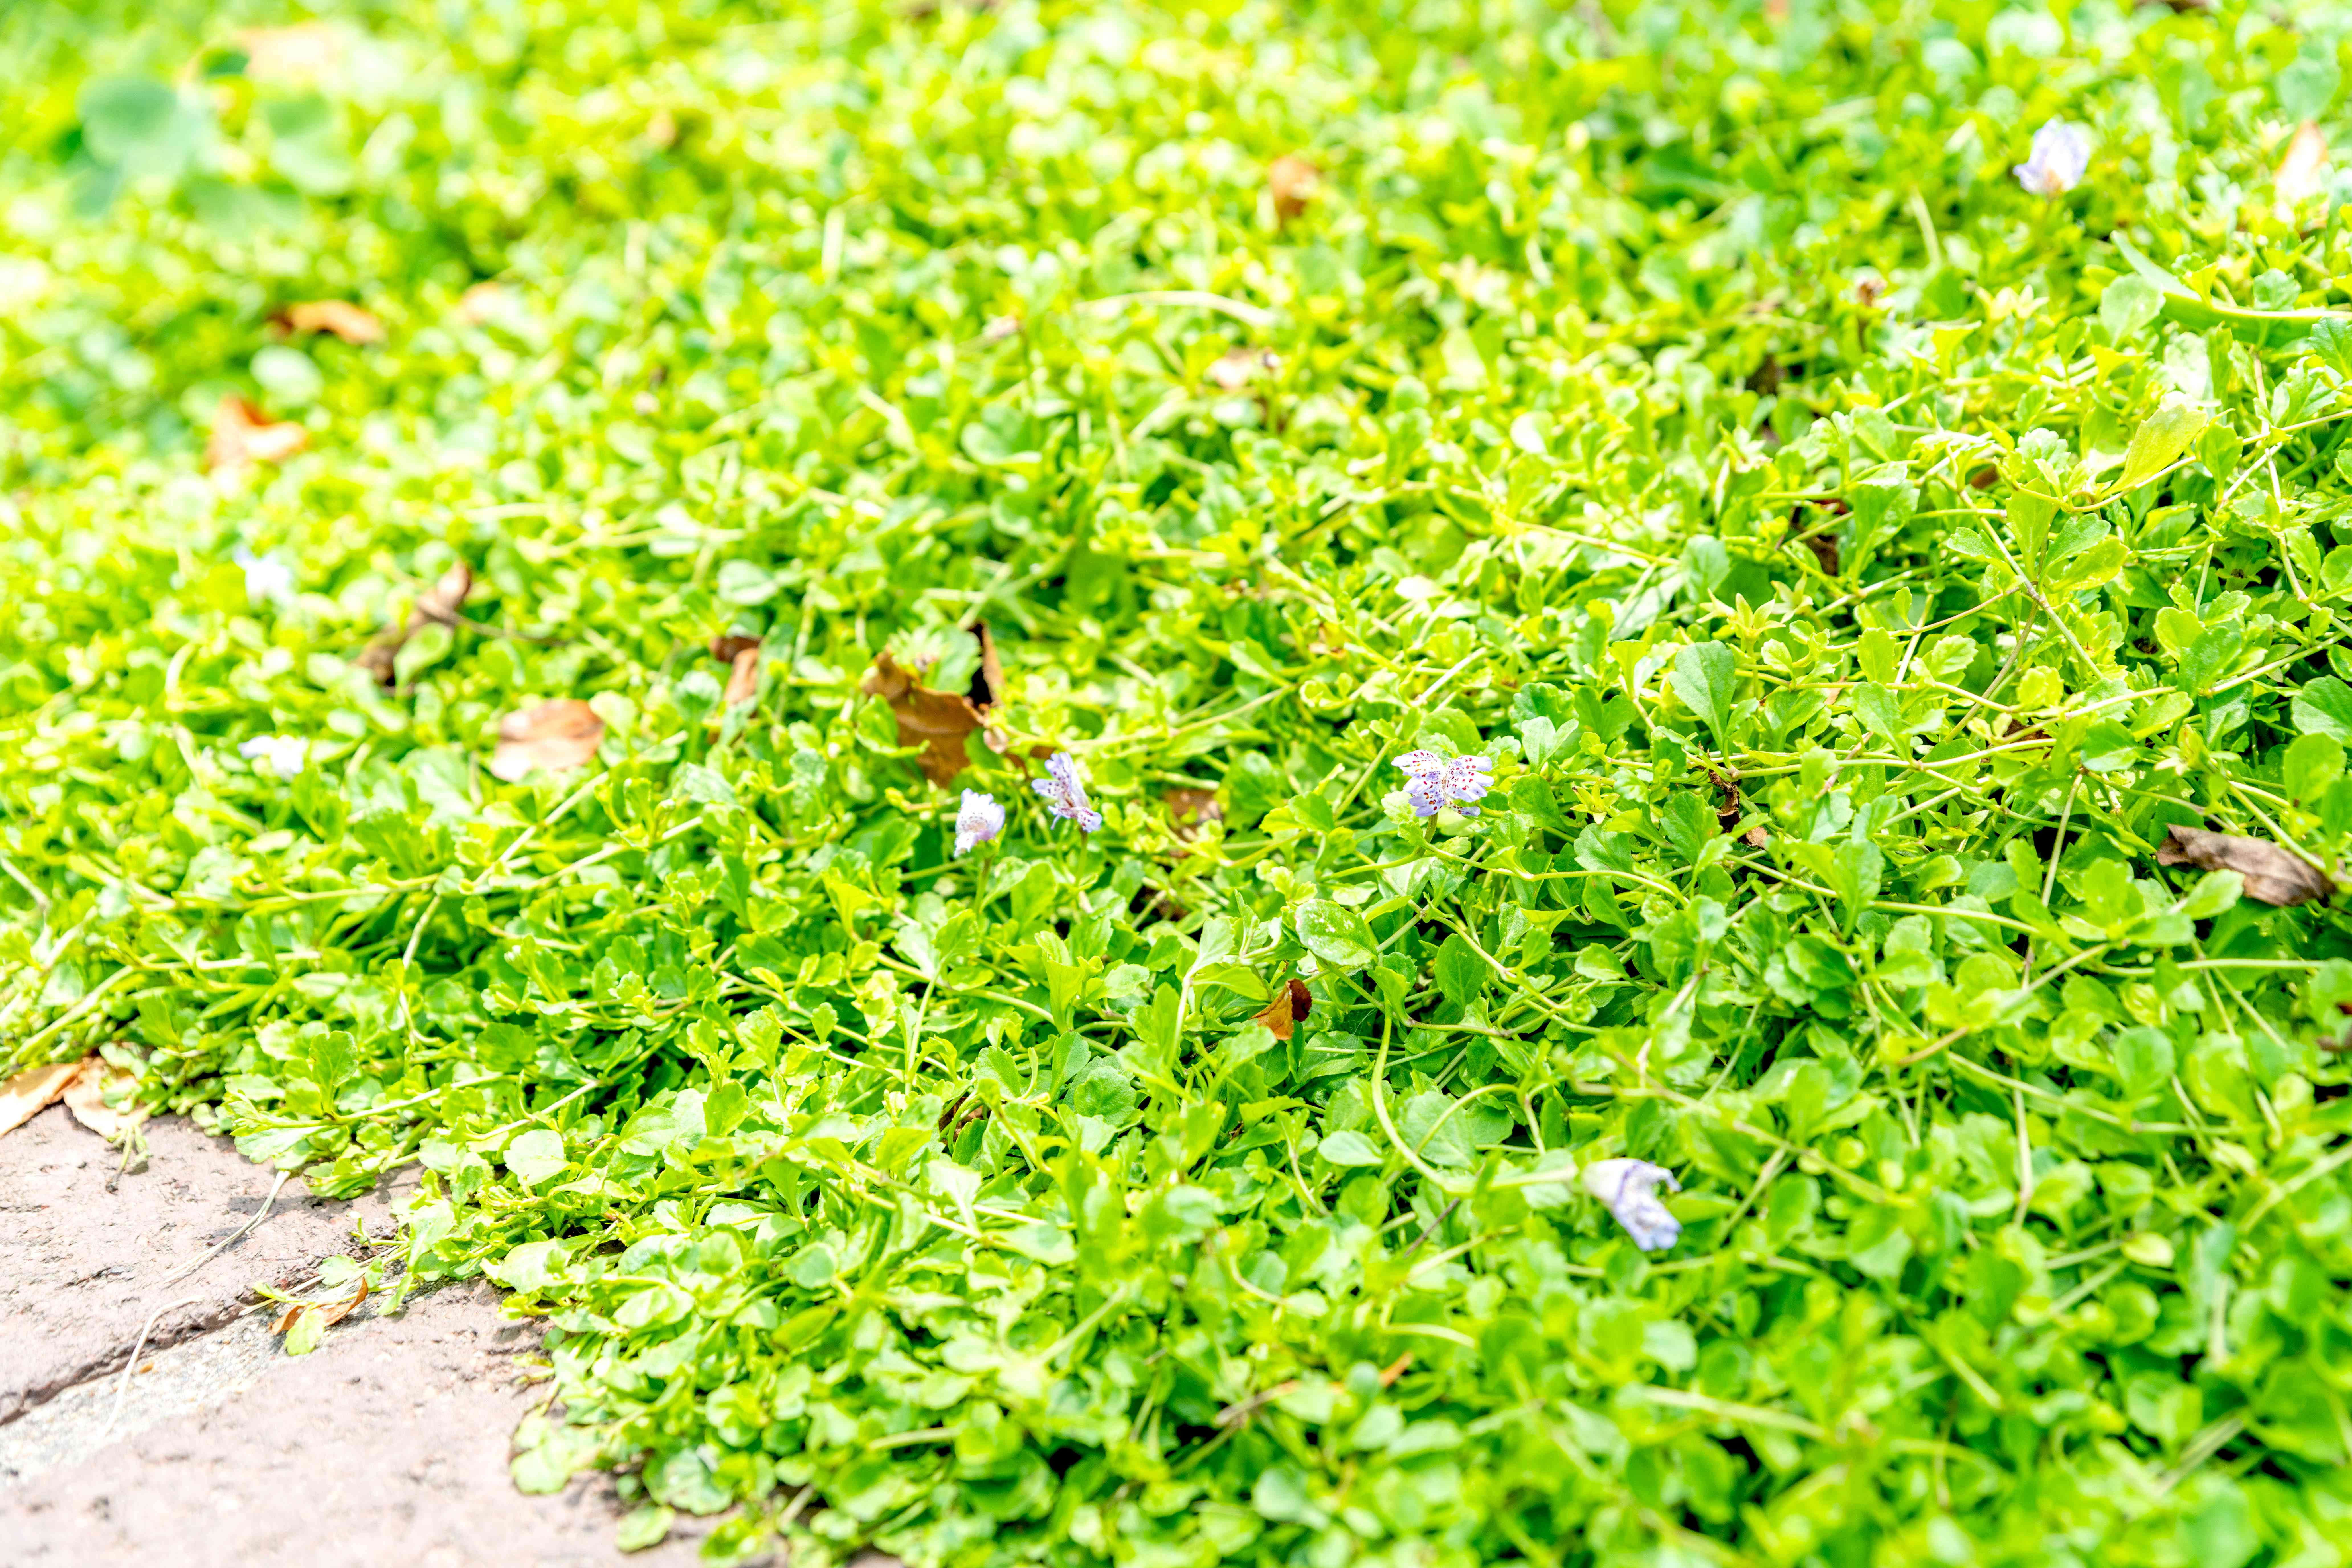 Creeping mazus ground cover with bright green circular leaves near pathway